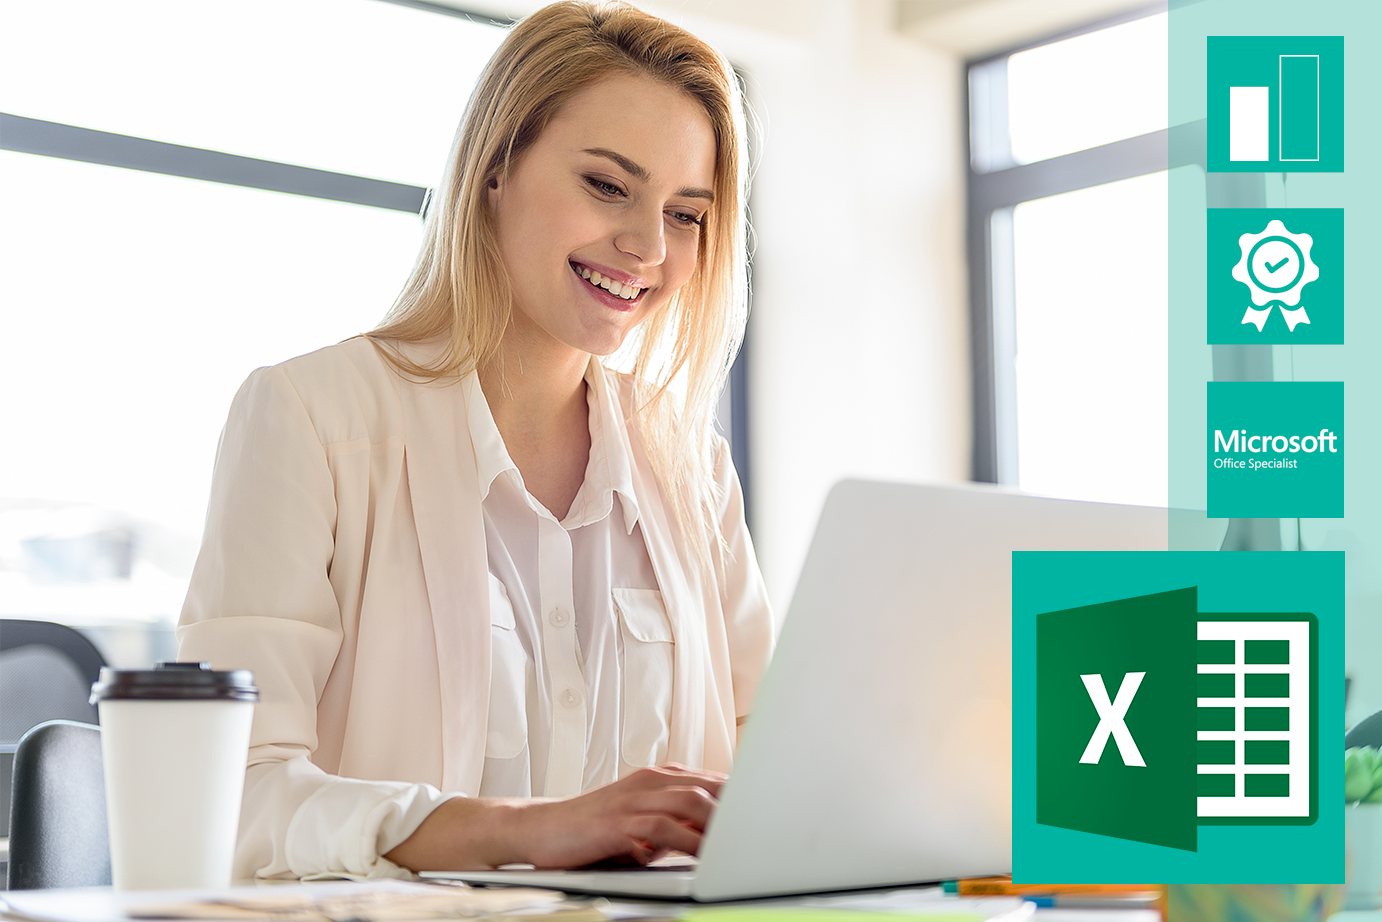 Microsoft Office Specialist - Microsoft Excel 2016 Core video-based Training zu Microsoft Office Specialist - Microsoft Excel 2016 Core